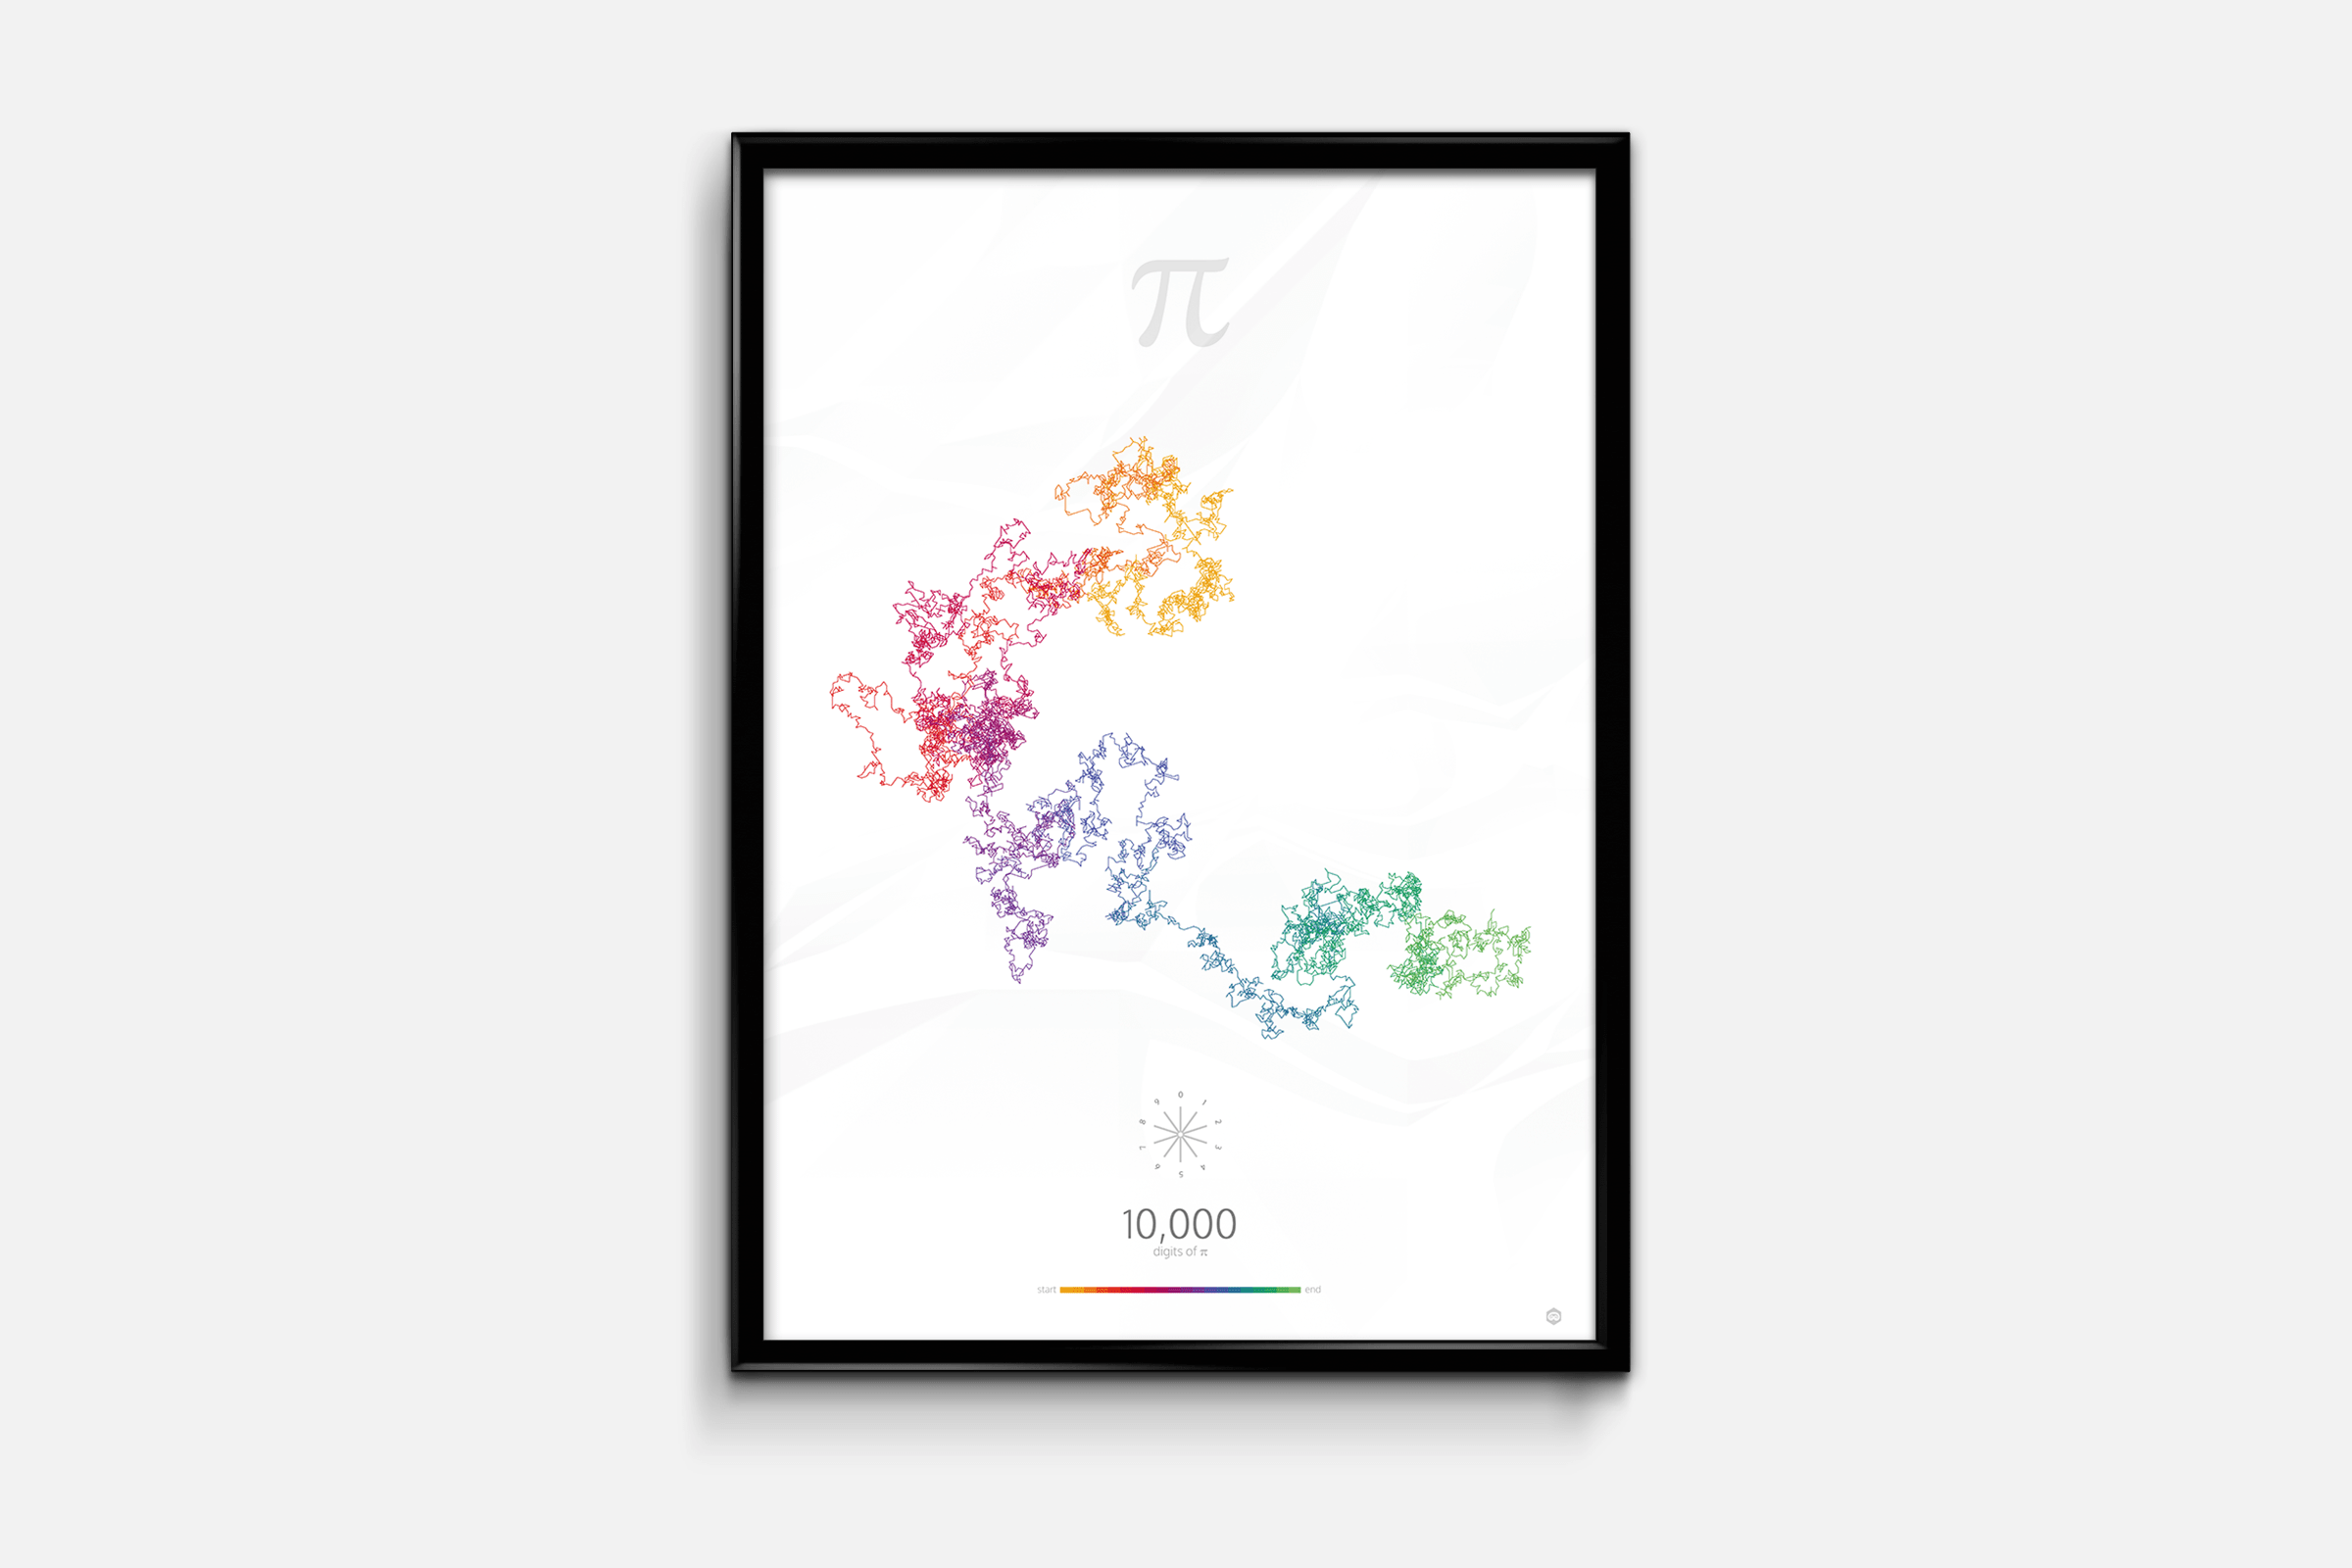 The poster of the first 1000 digits of pi